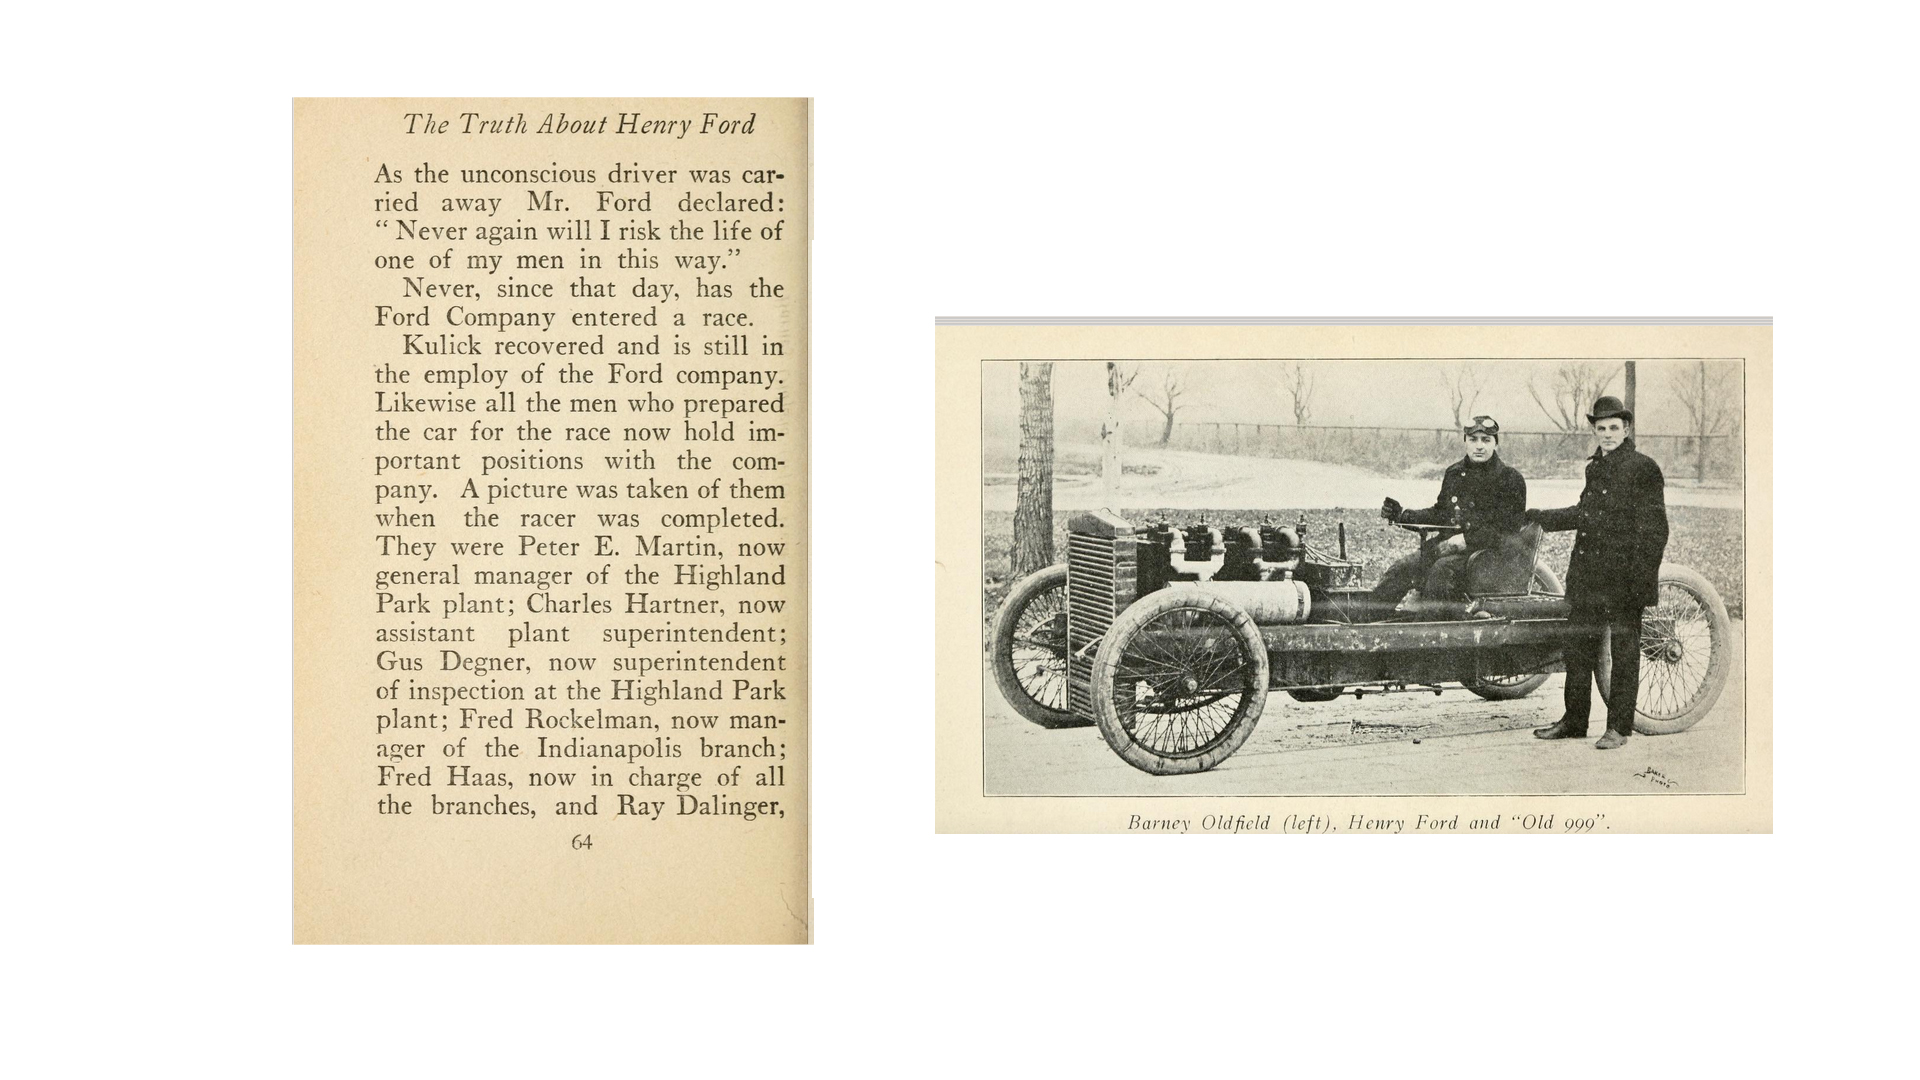 Henry Ford, standing, and Barney Oldfield in 1902, with the Ford 999 racing automobile. - Archive .org